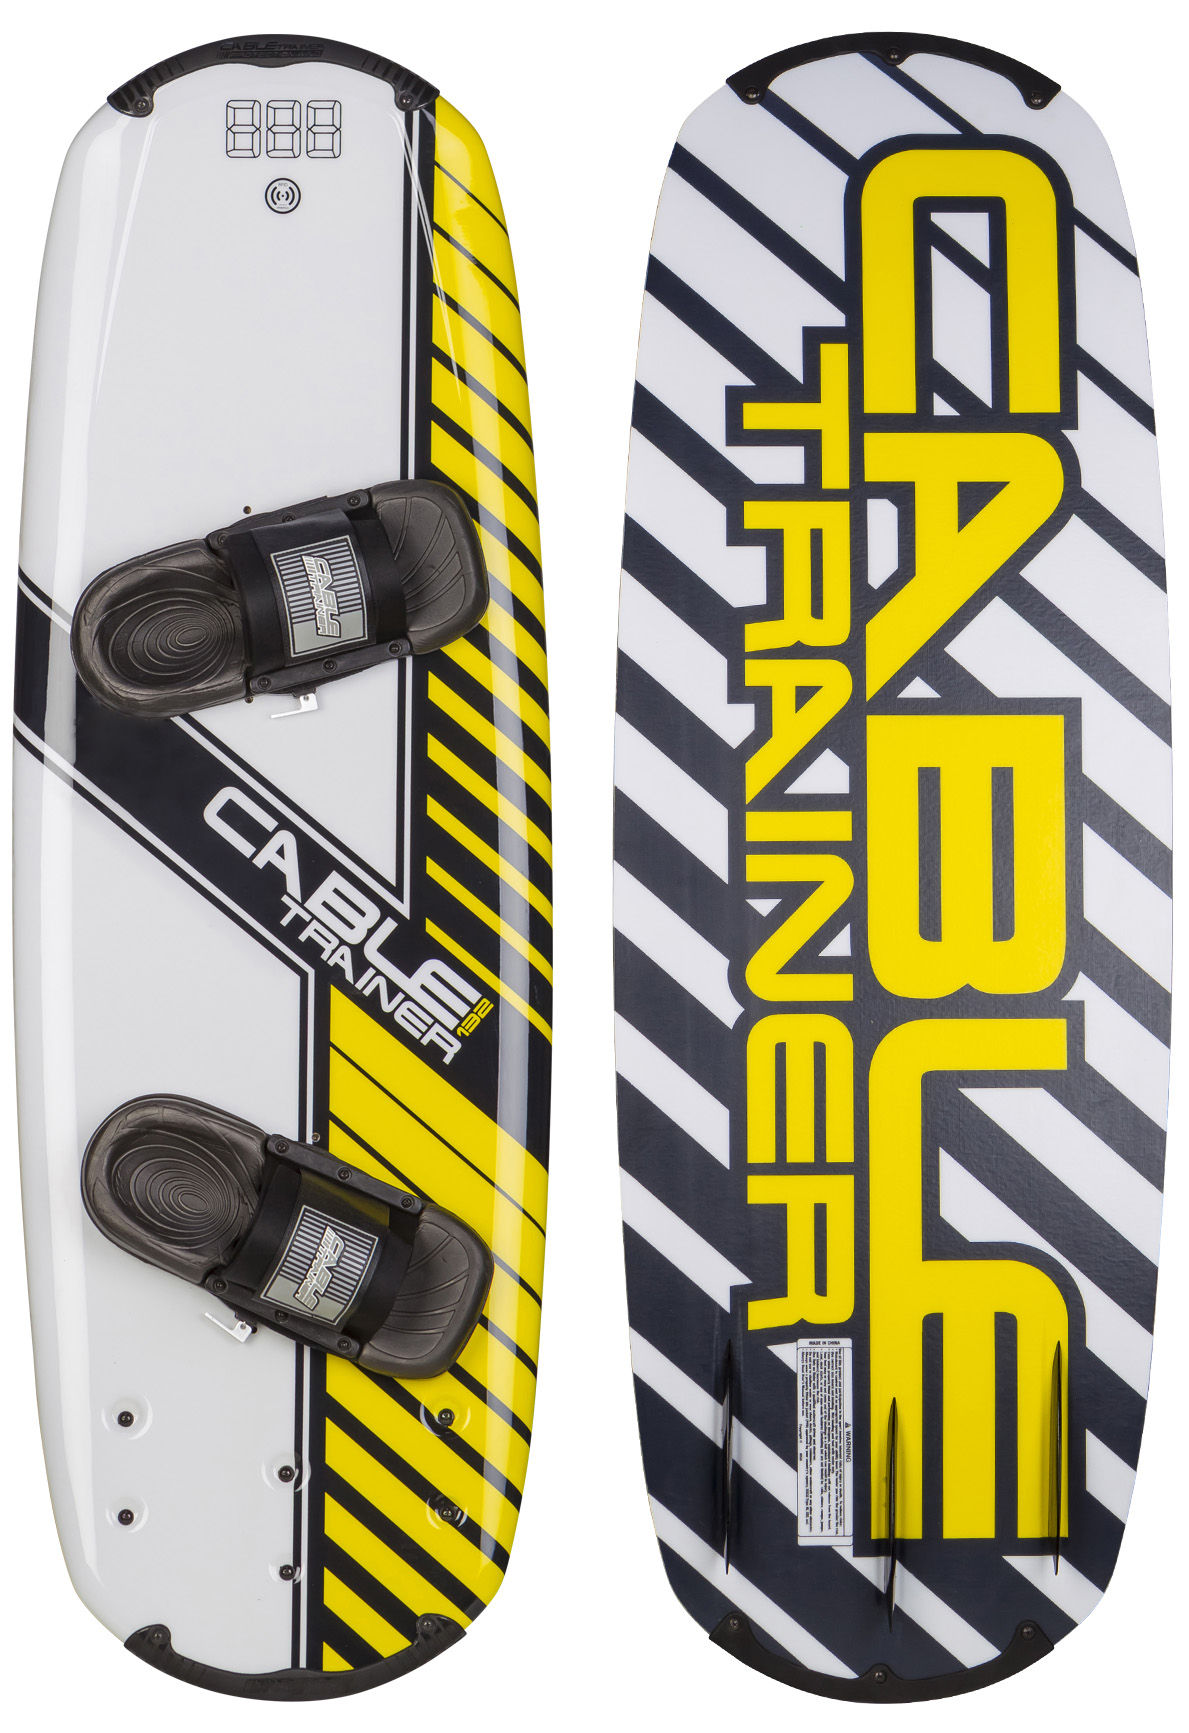 CABLE TRAINER 132 JR. WAKEBOARD - YELLOW RONIX 2018